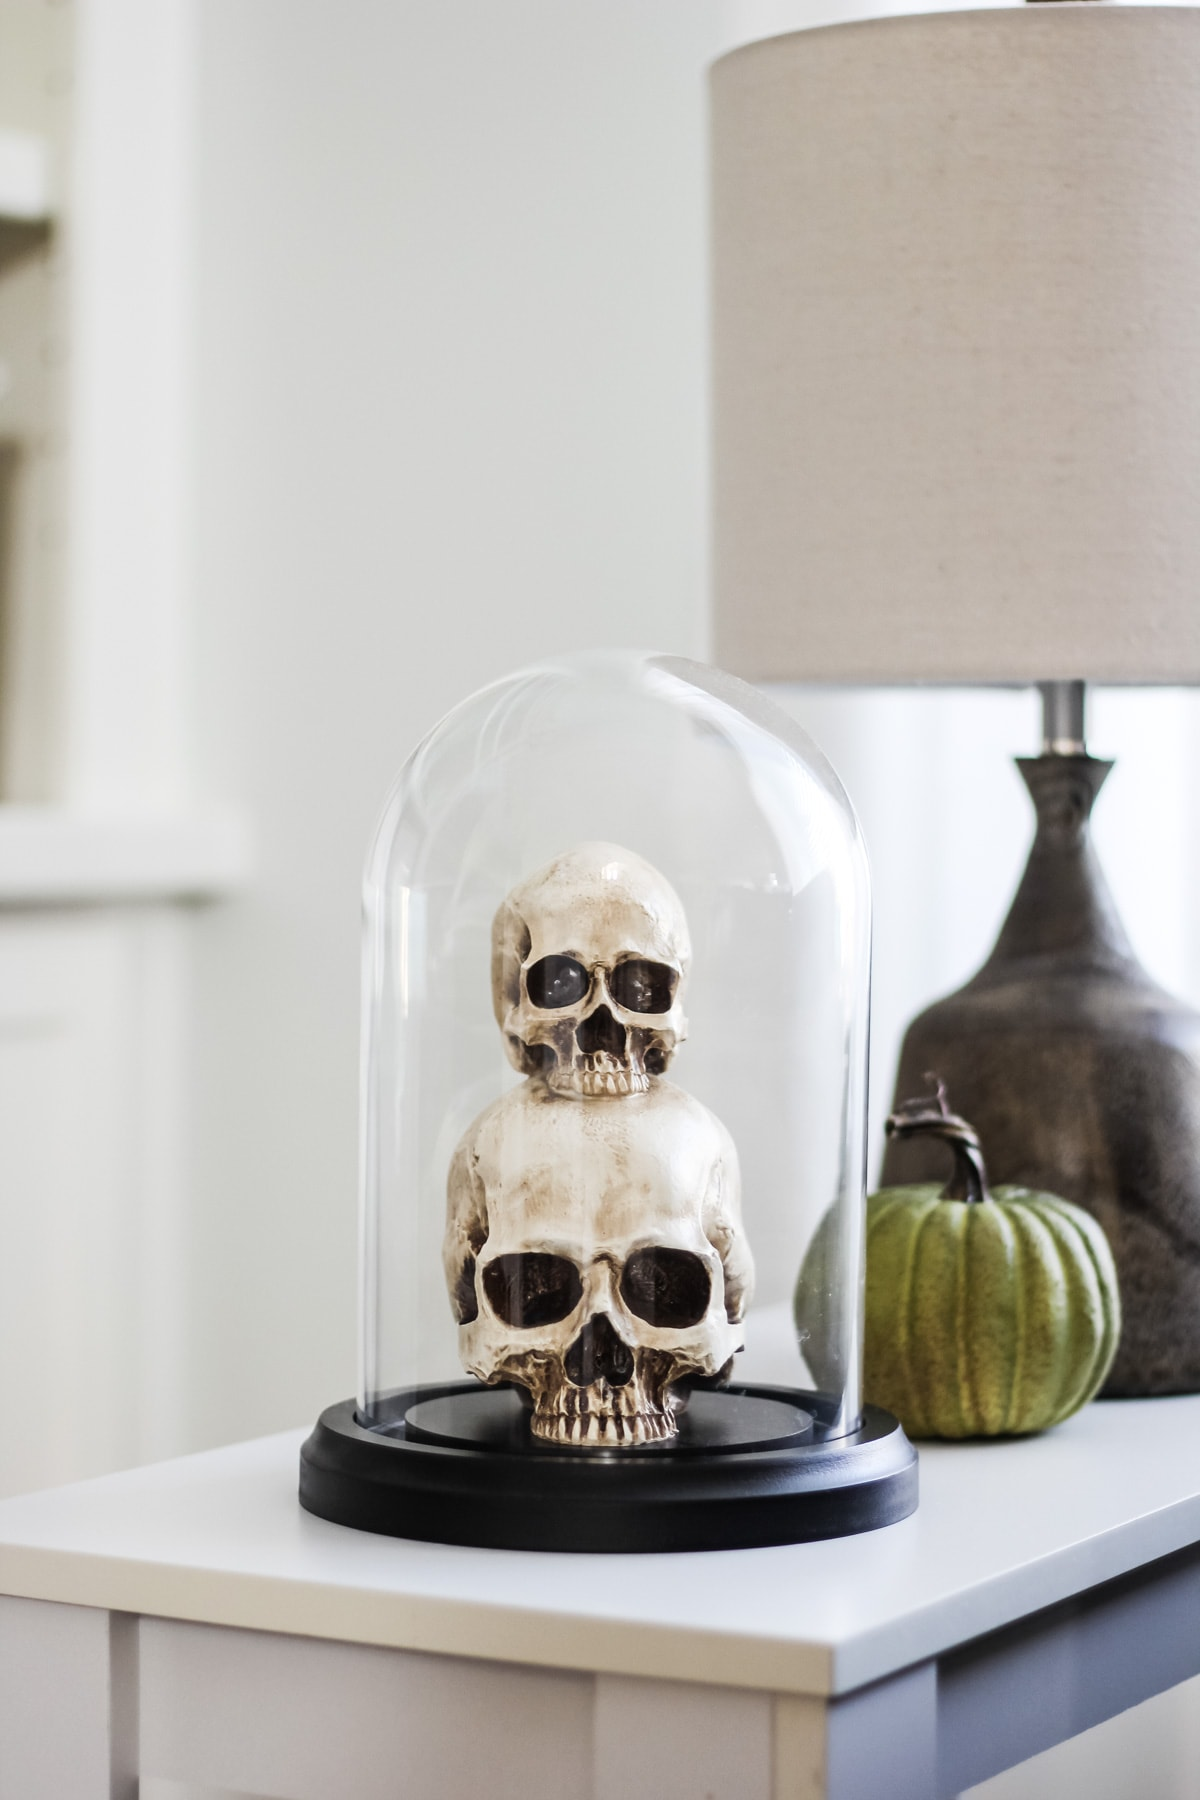 Love the skulls under the cloche!